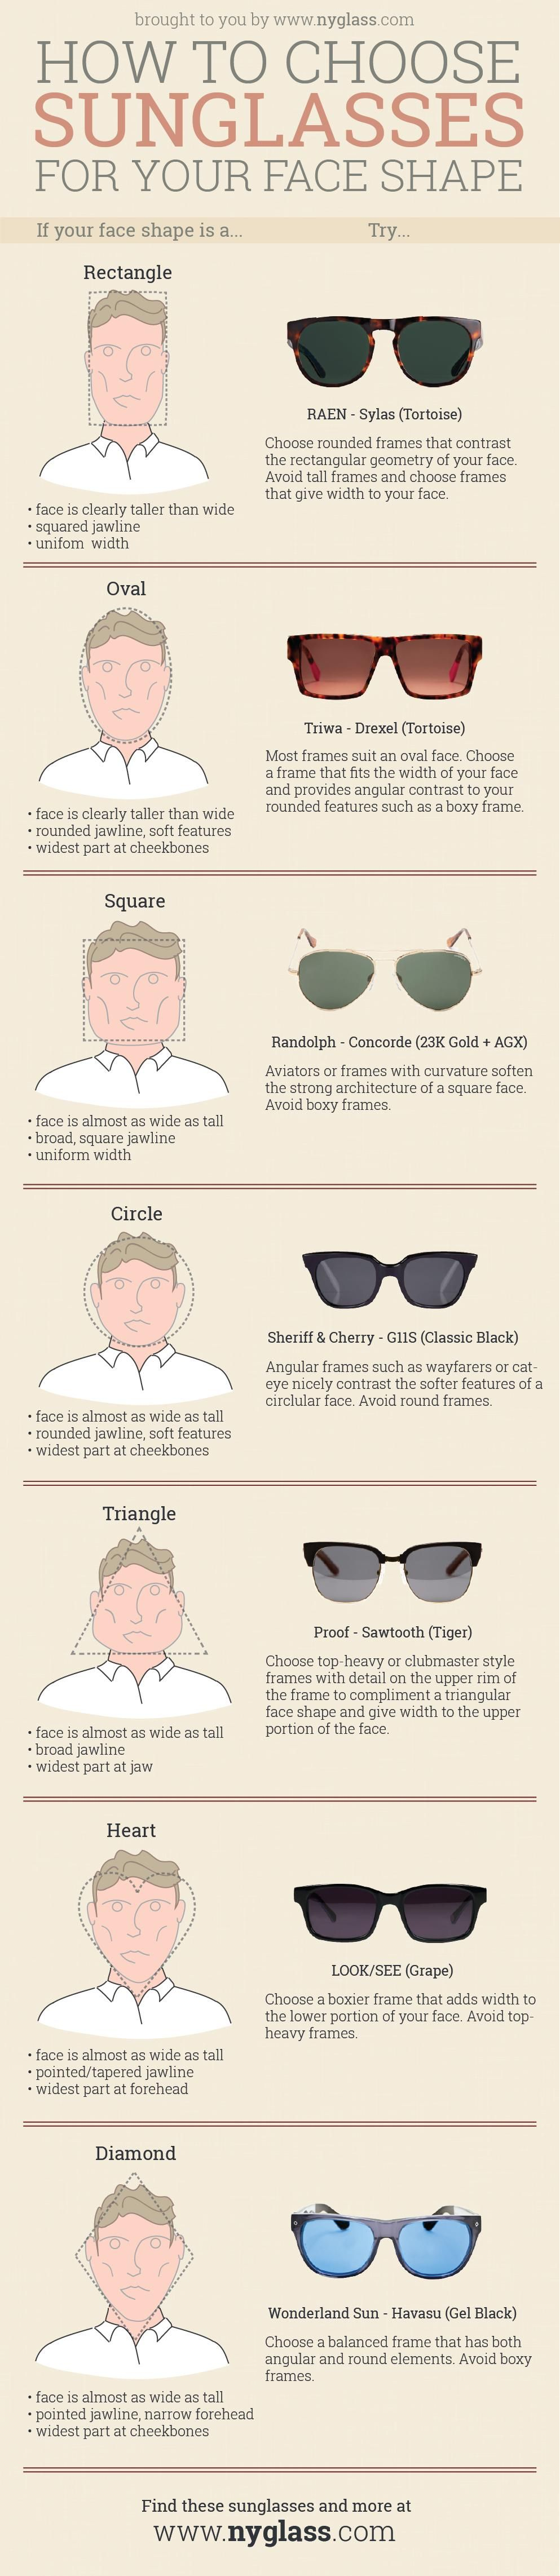 Mens sunglasses large head - How To Choose Sunglasses For Your Face Shape Guide For Both Men And Women